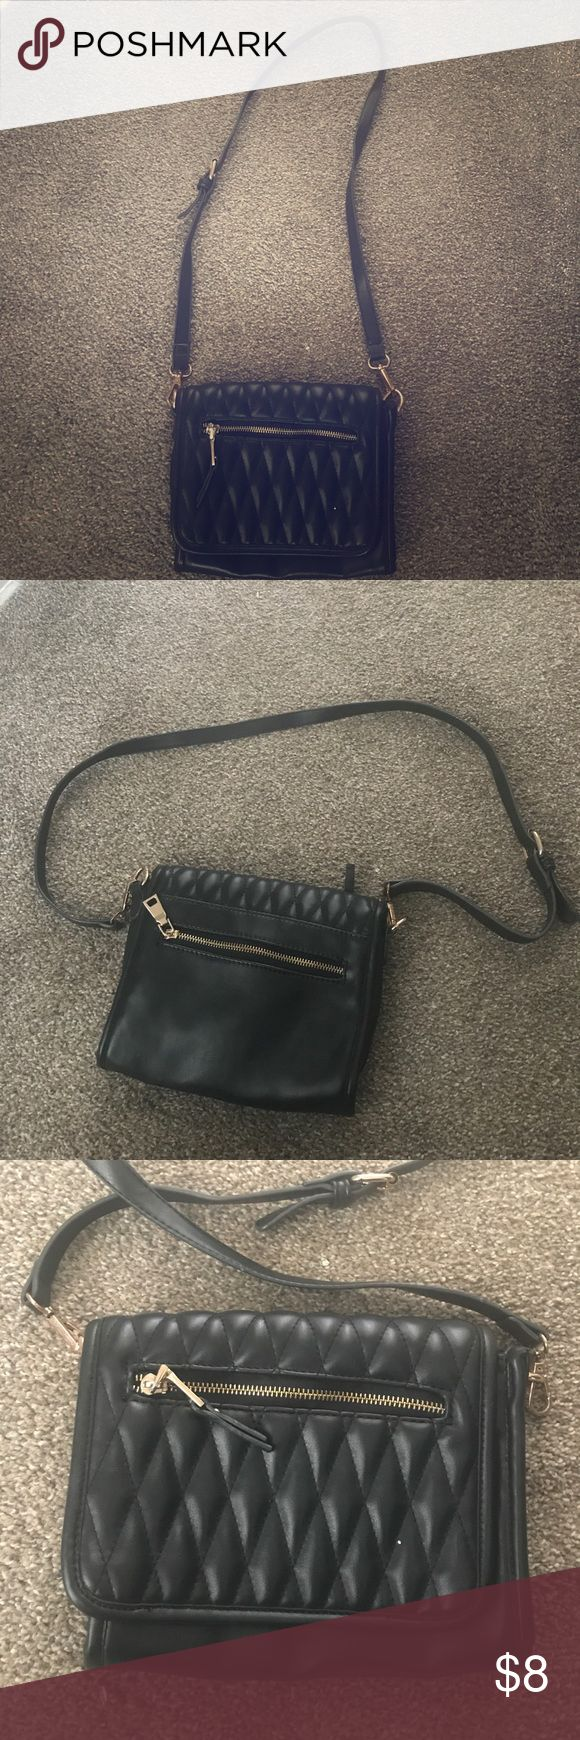 Black crossover purse Black crossover purse with gold zipper and details Bags